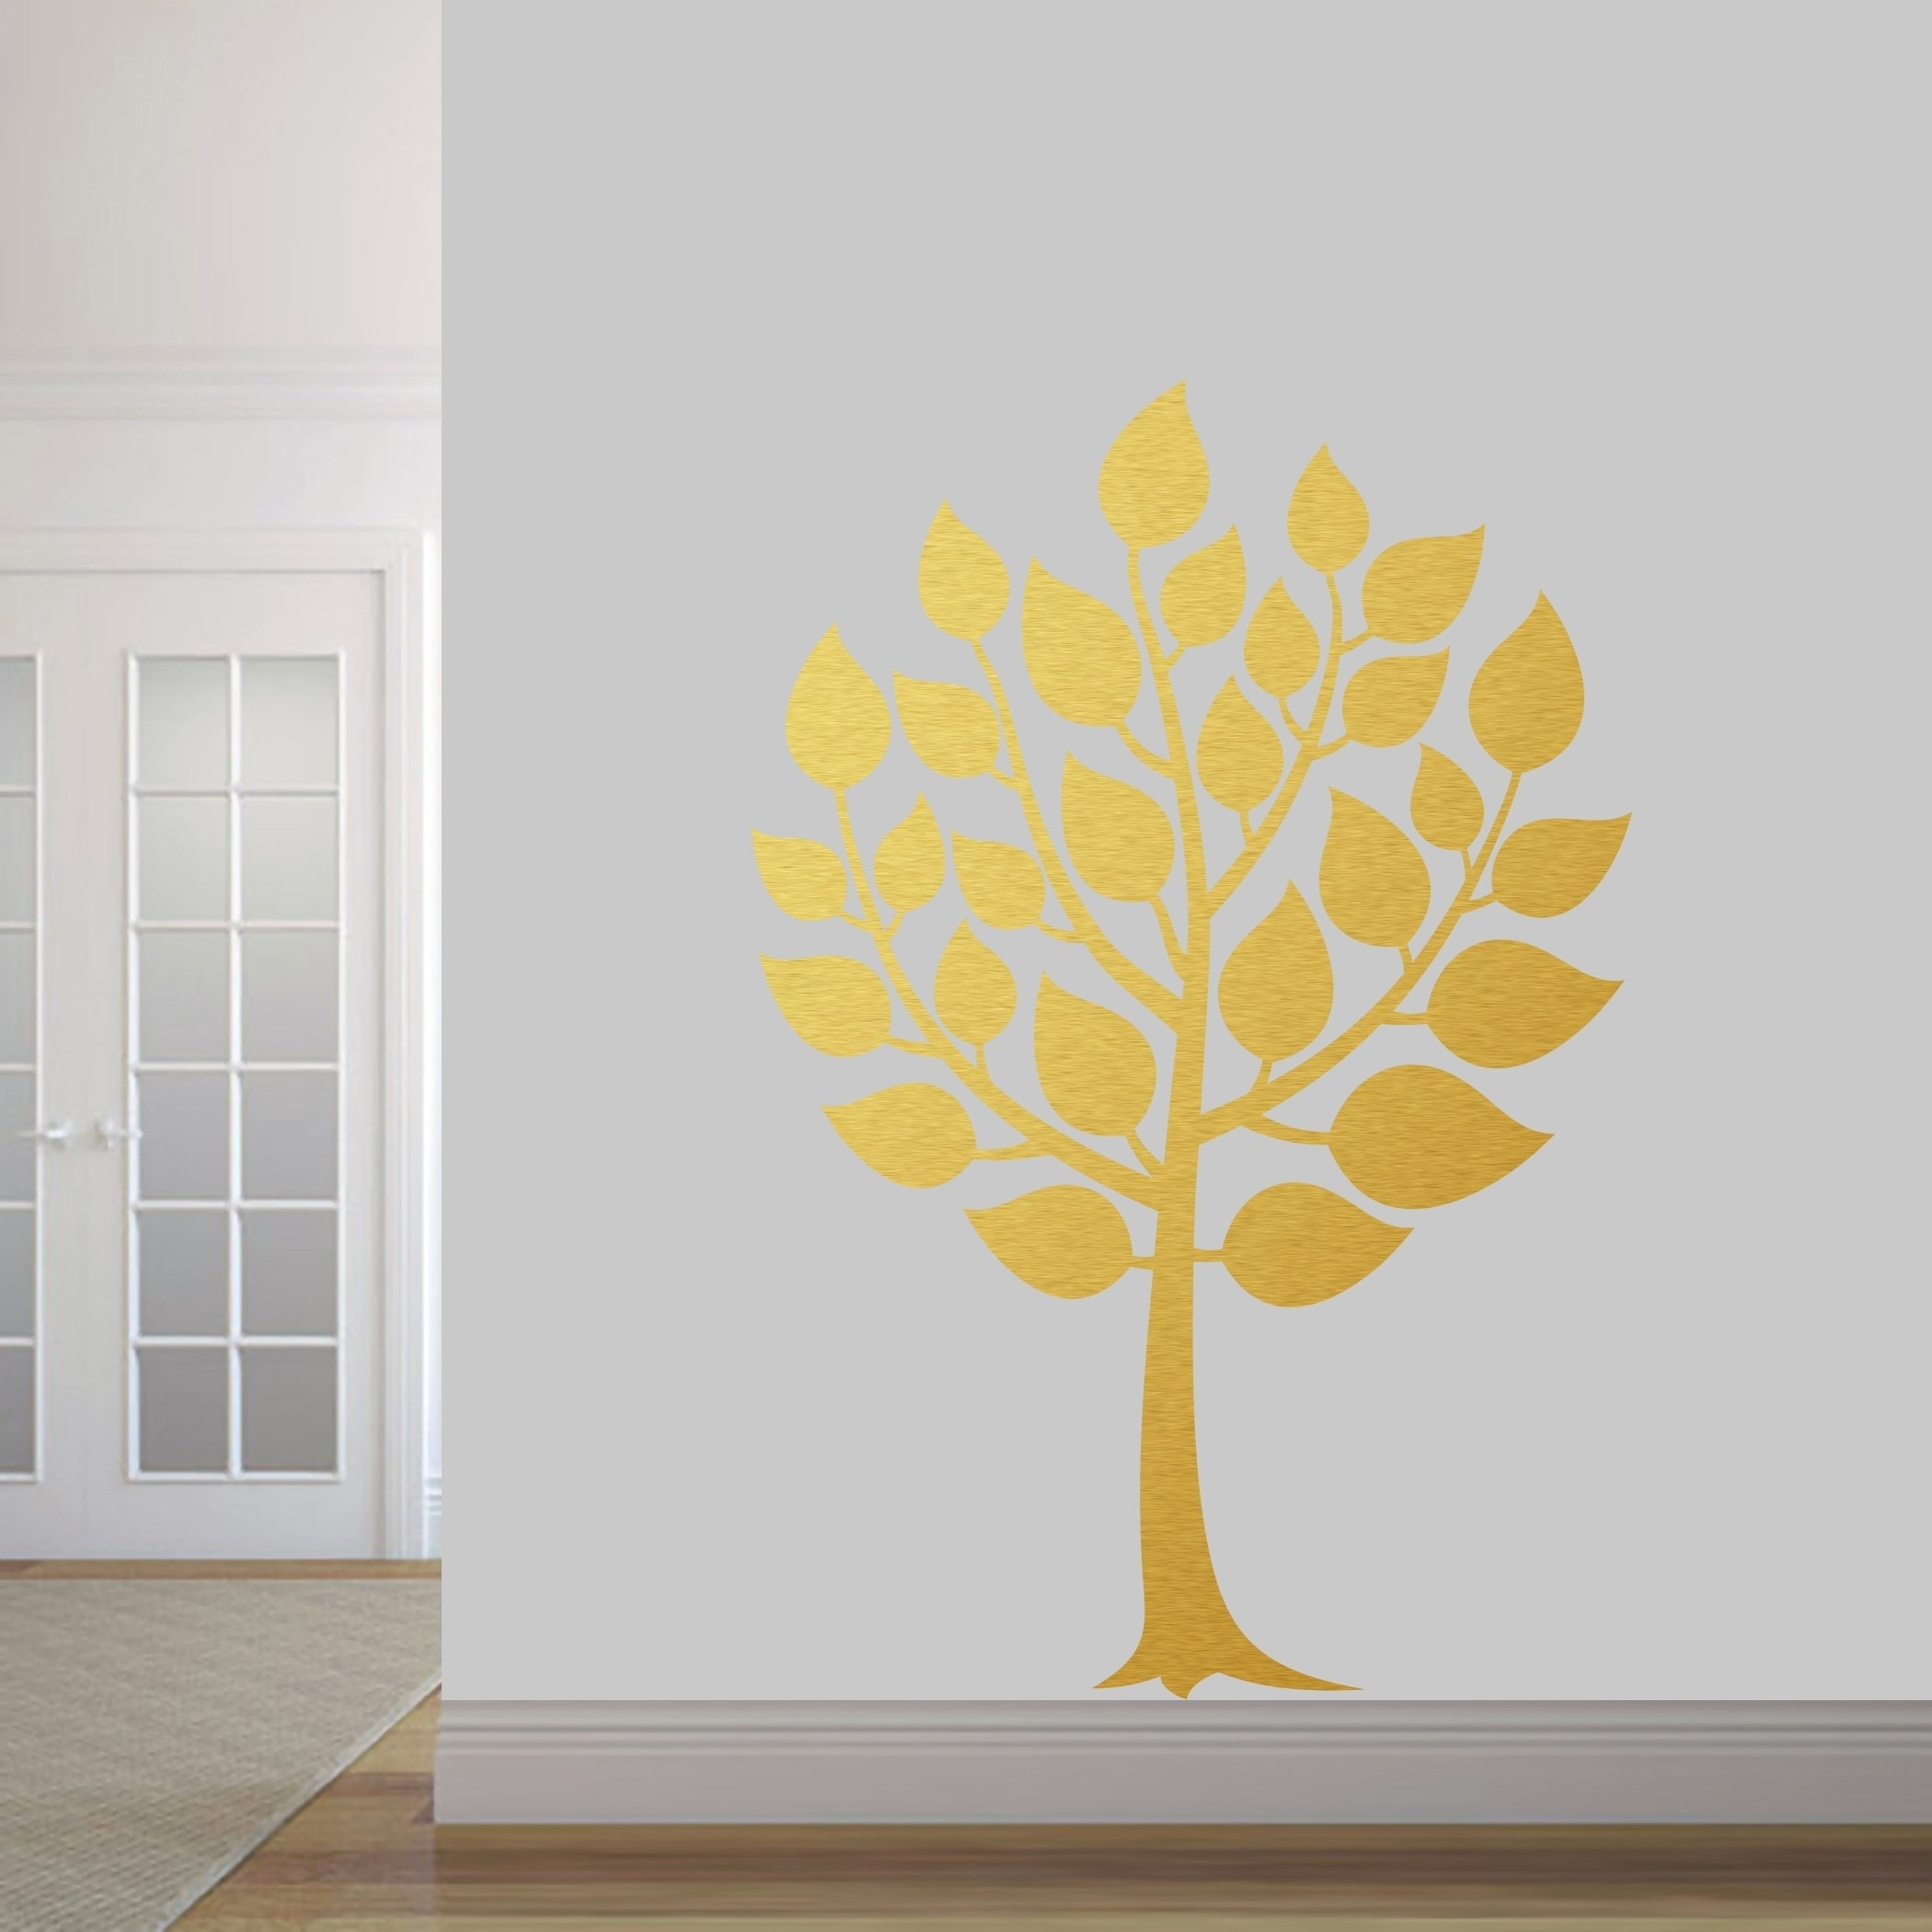 Round Tree Wall Decal - Free Shipping Today - Overstock.com - 26516914